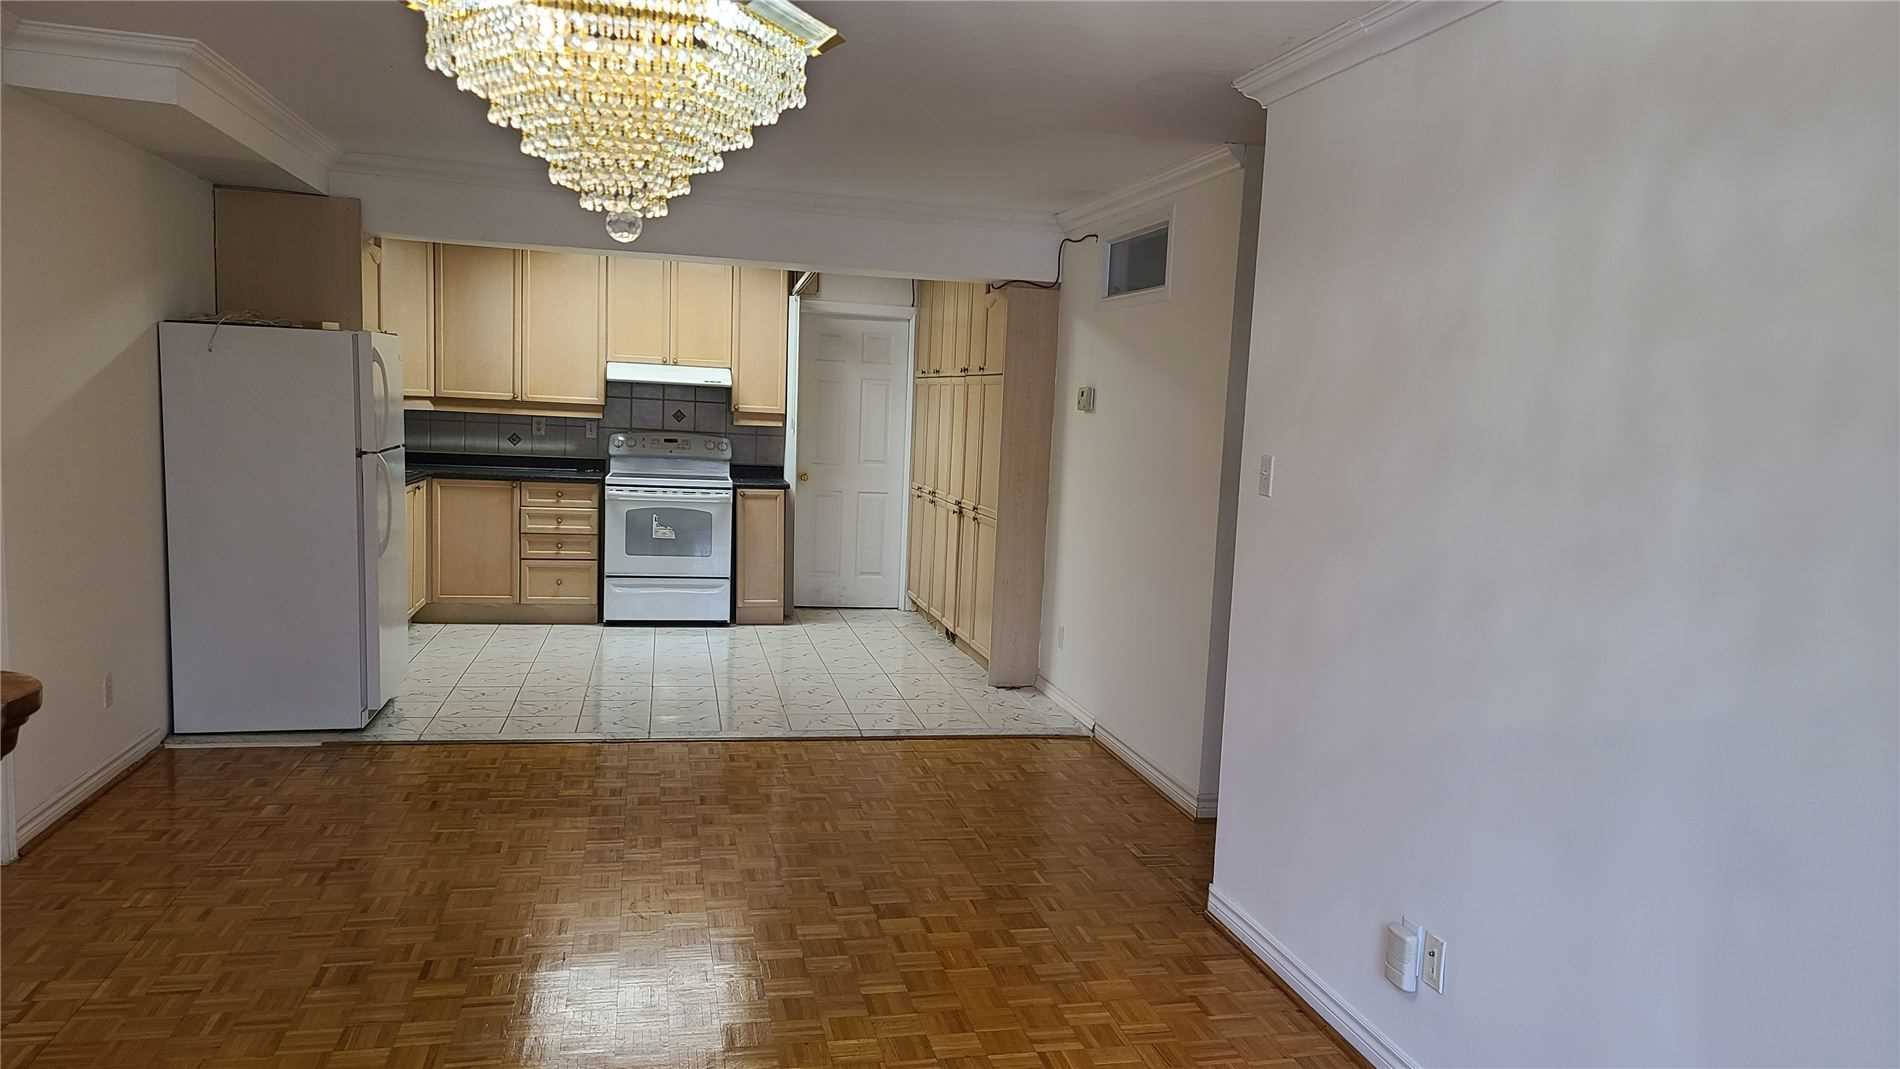 Image 9 of 13 showing inside of 2 Bedroom Detached 2-Storey for Lease at 217 Finch Ave W, Toronto M2R1M2